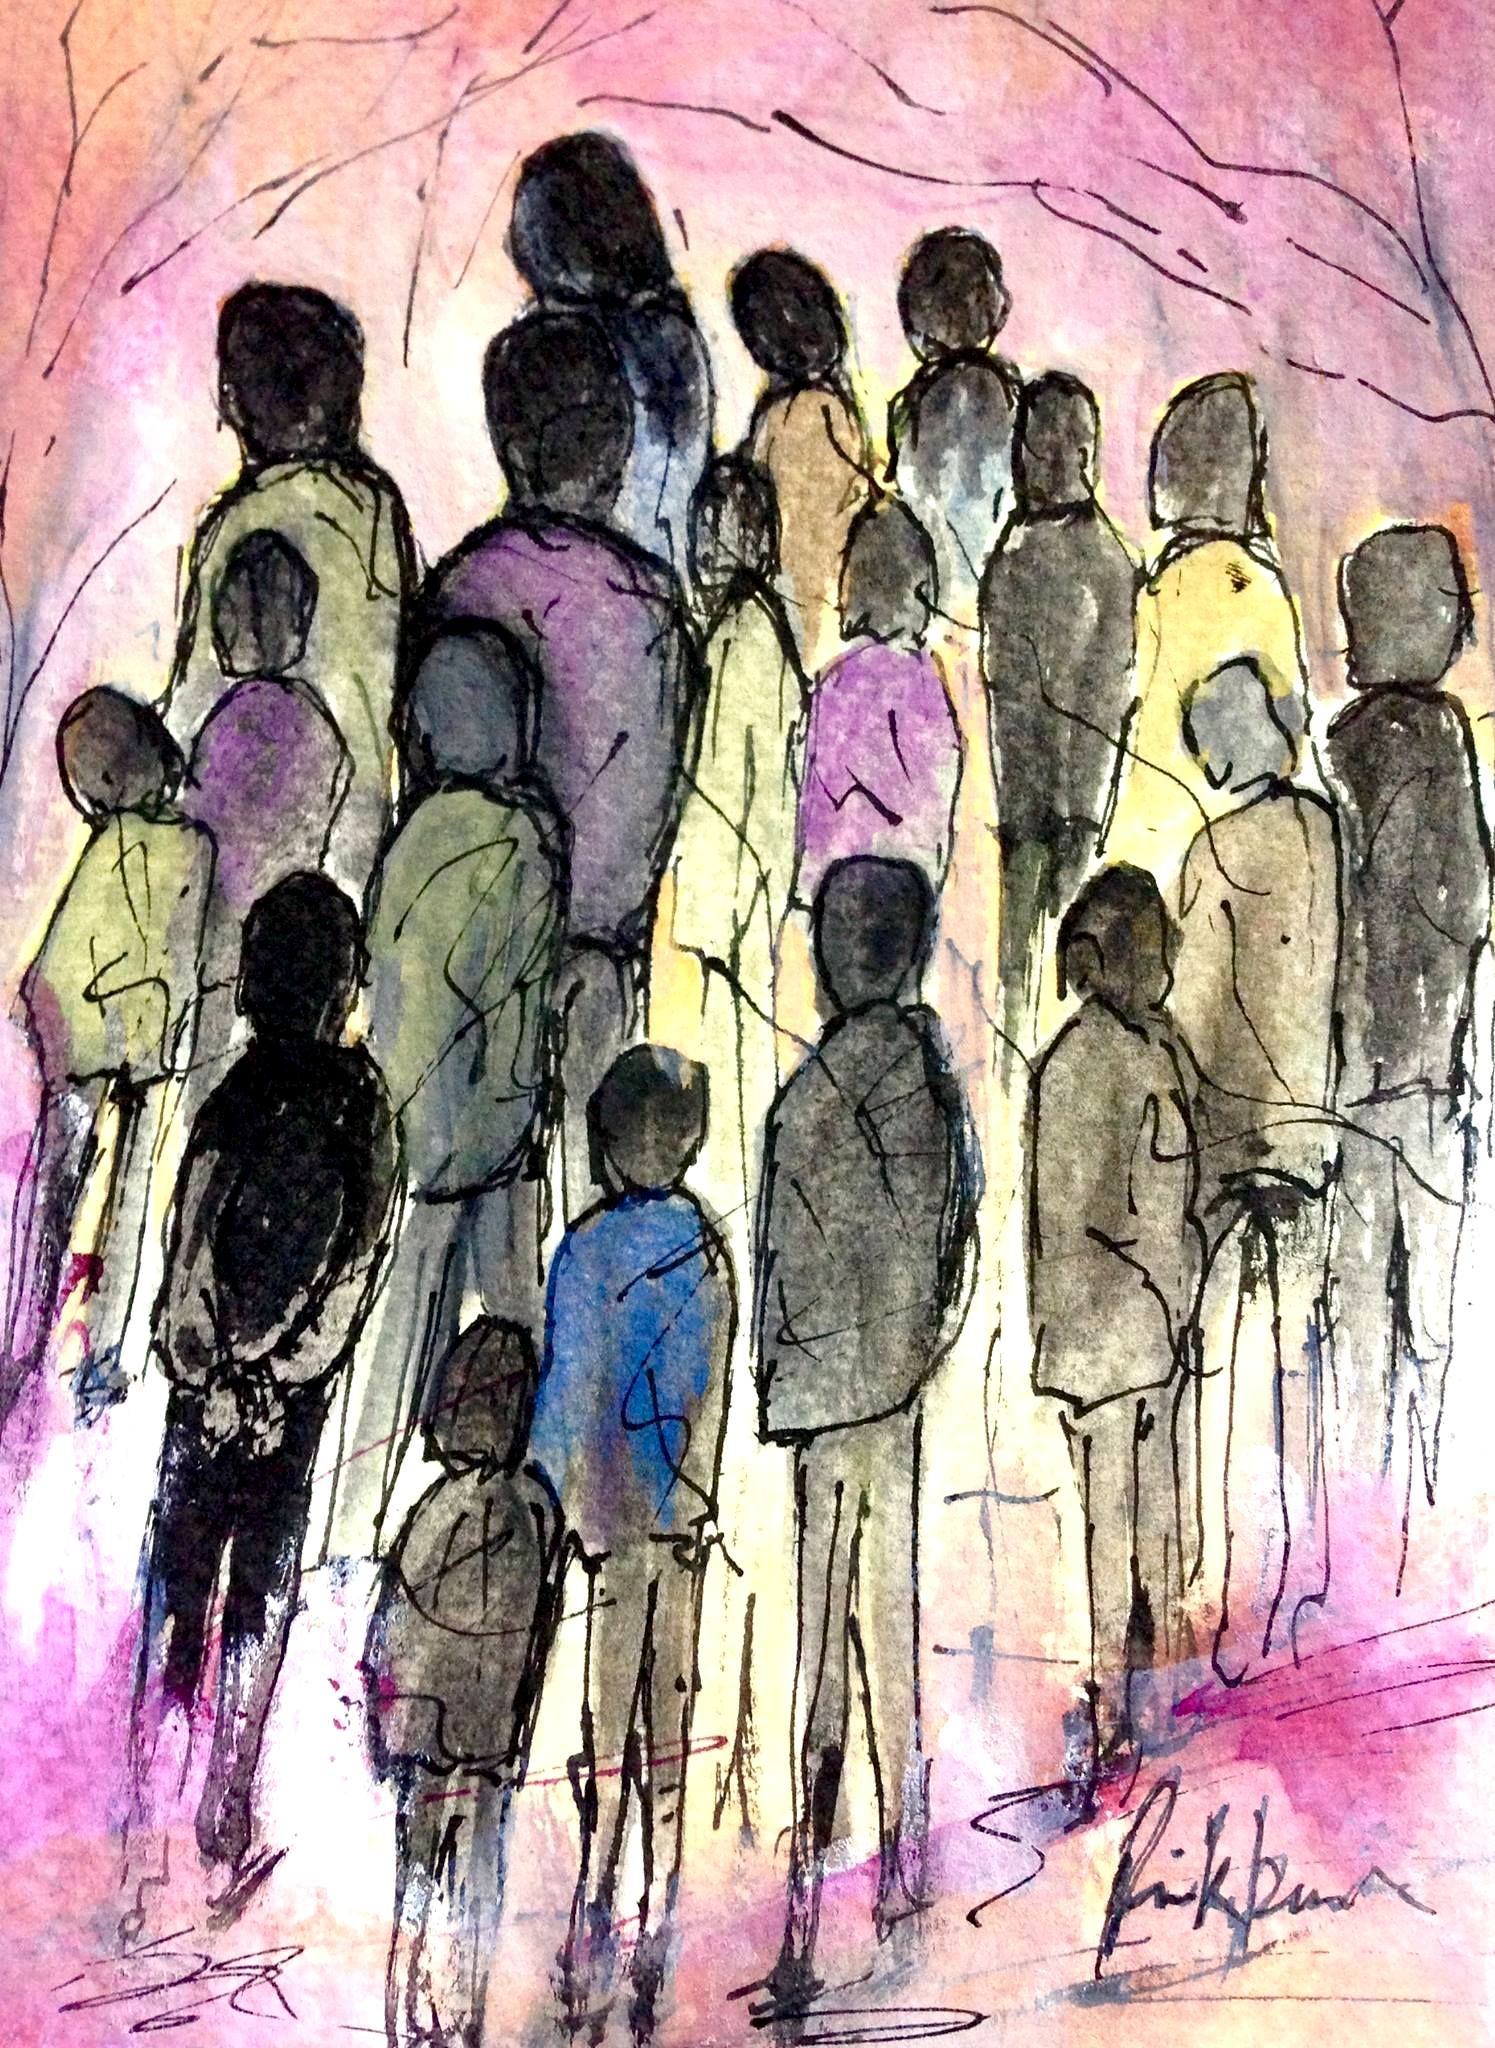 People Painting Art Watercolor Paintings He Wa Saddened By The New Paraphrase